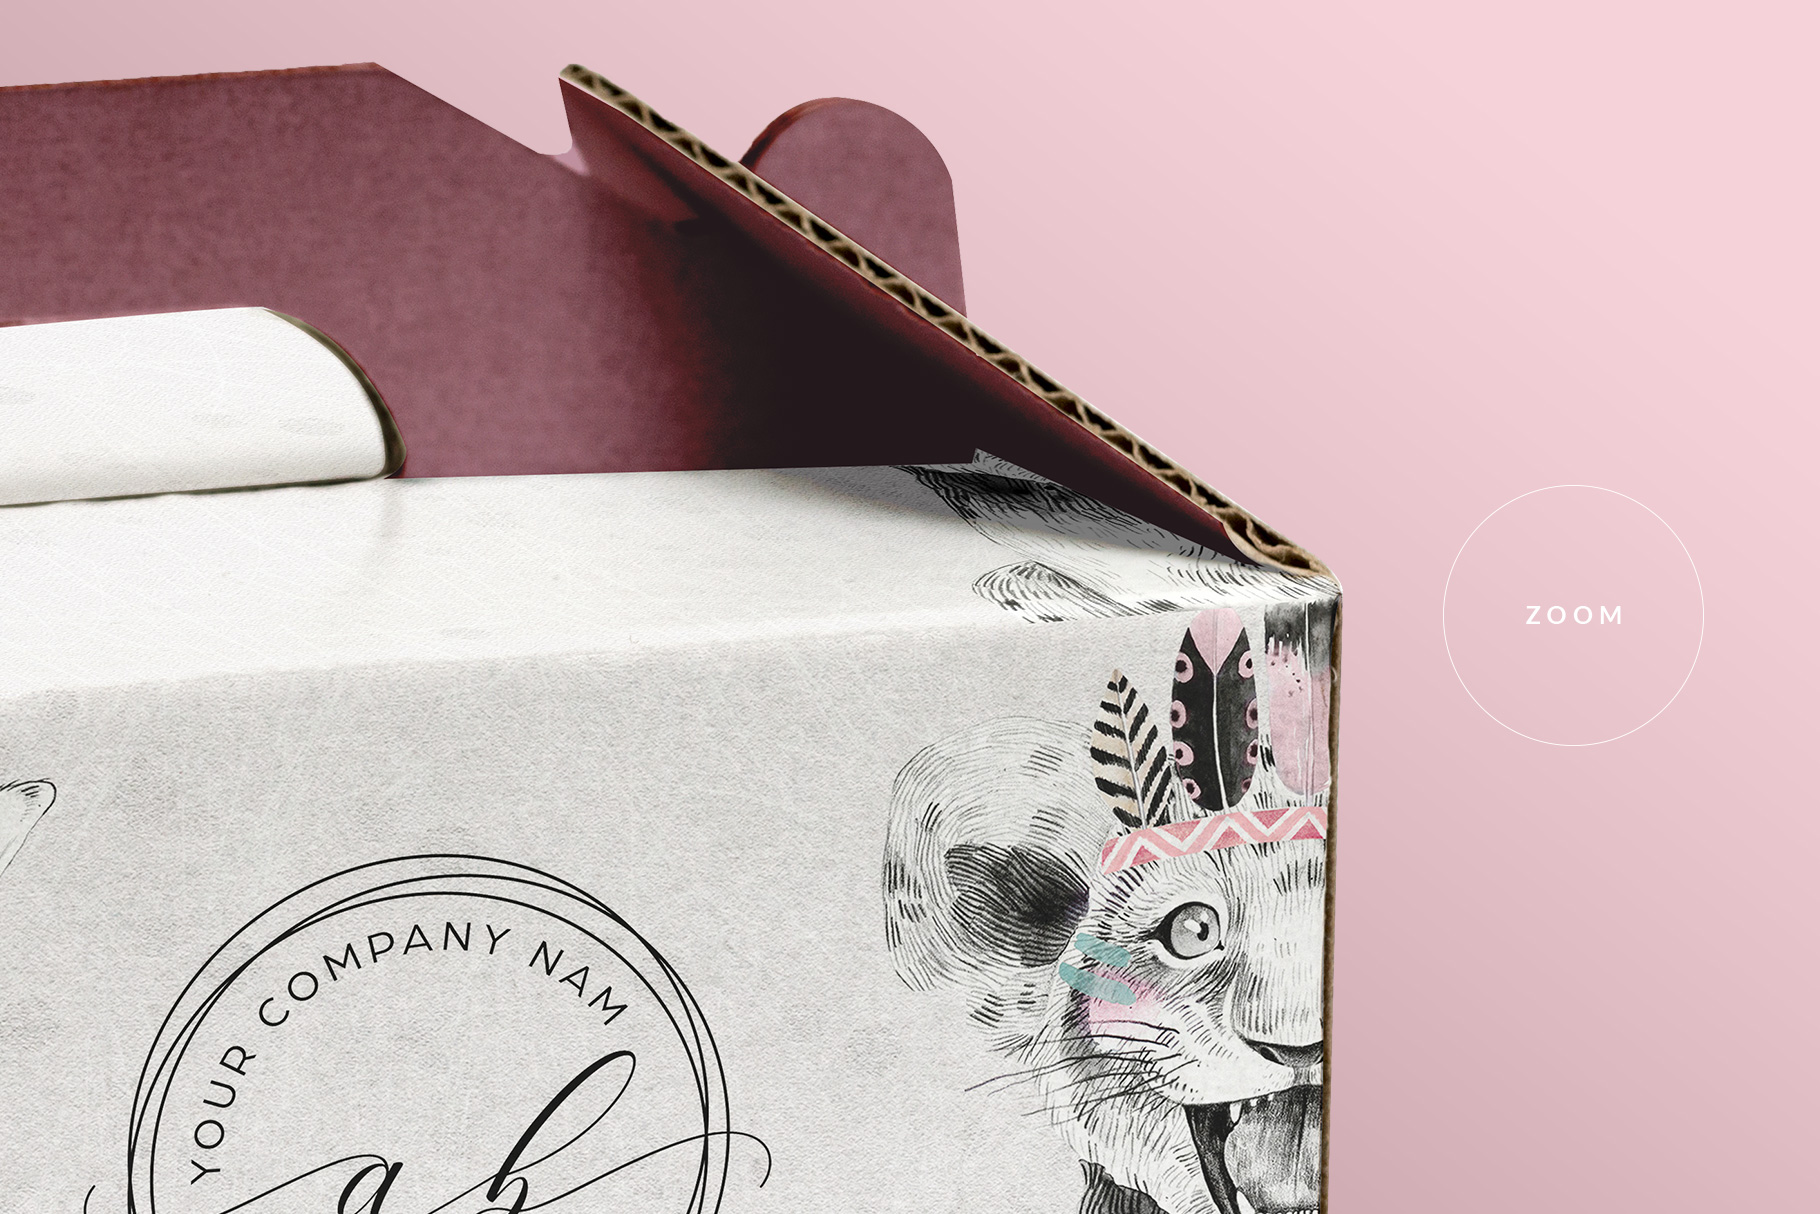 zoomed in image of the cake box packaging mockup